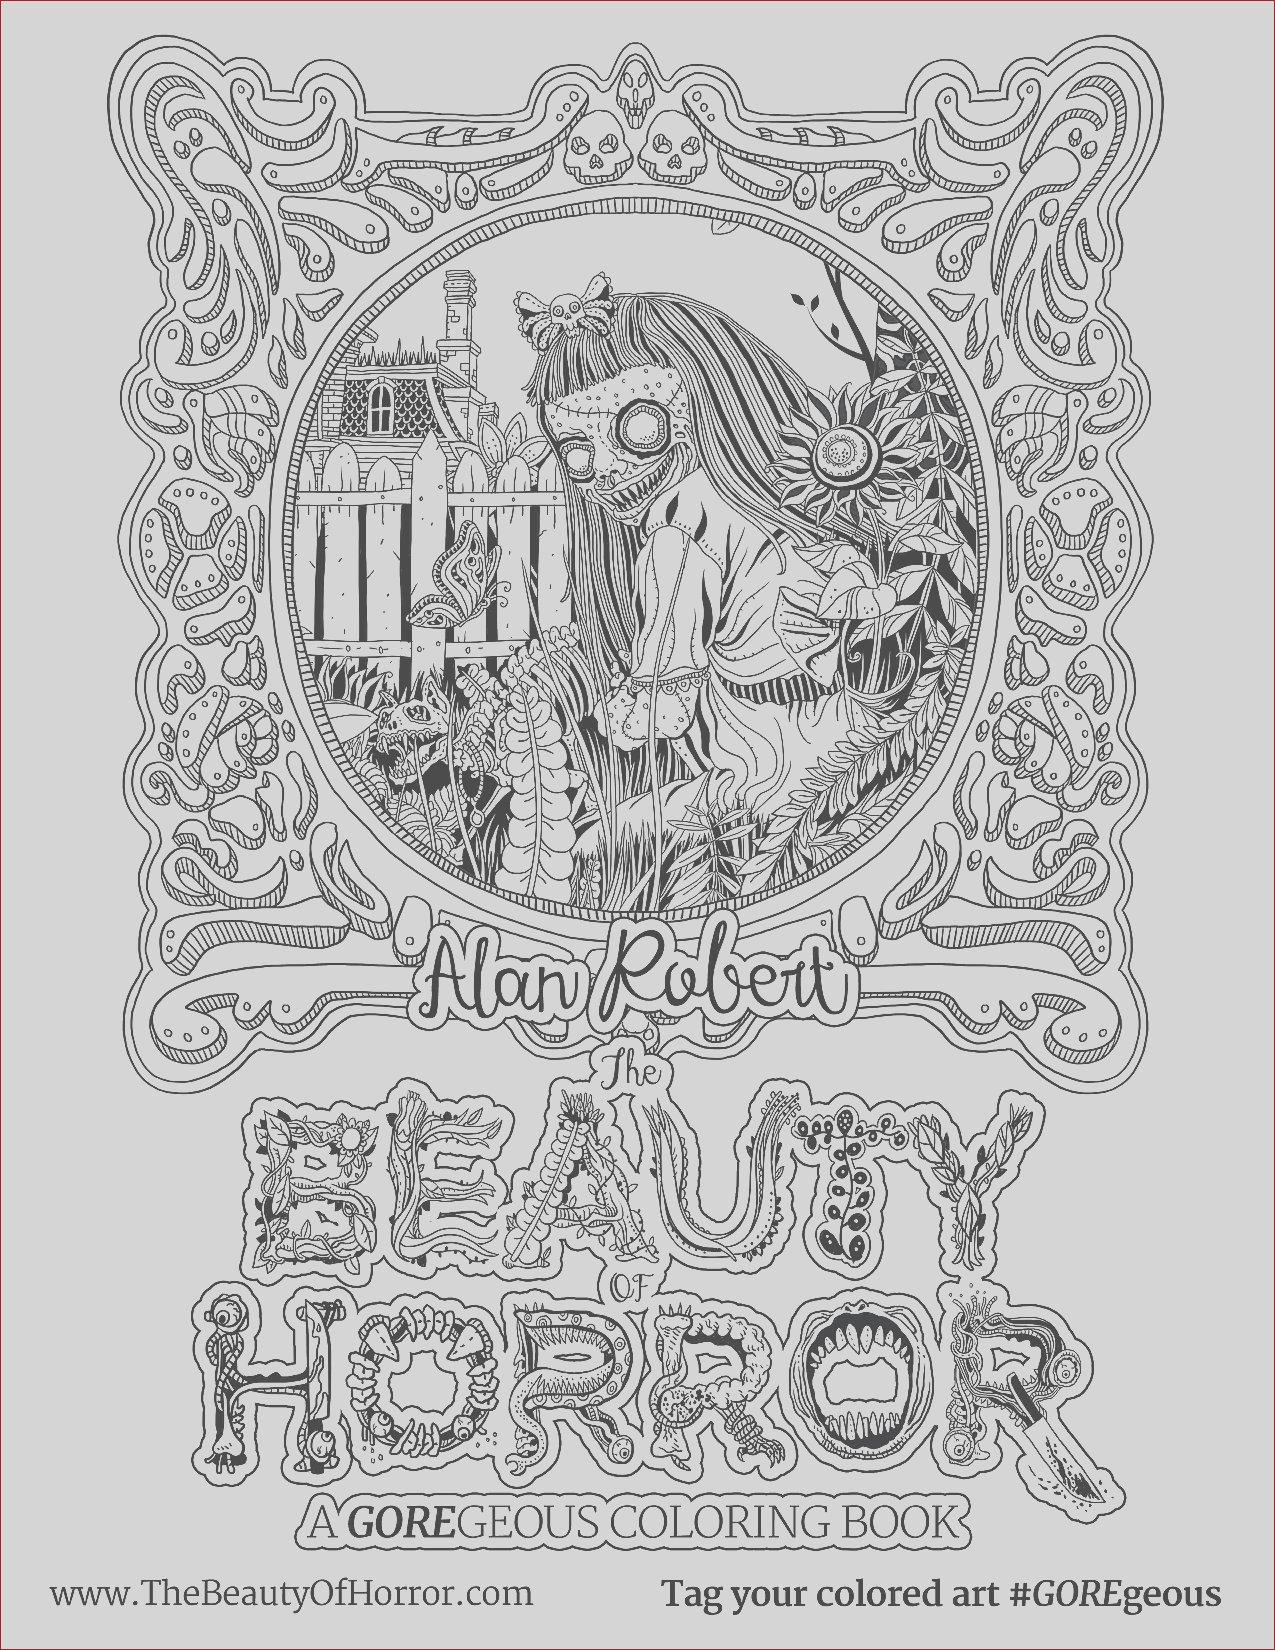 life of agony alan robert the beauty of horror ii coloring book interview exclusive page s